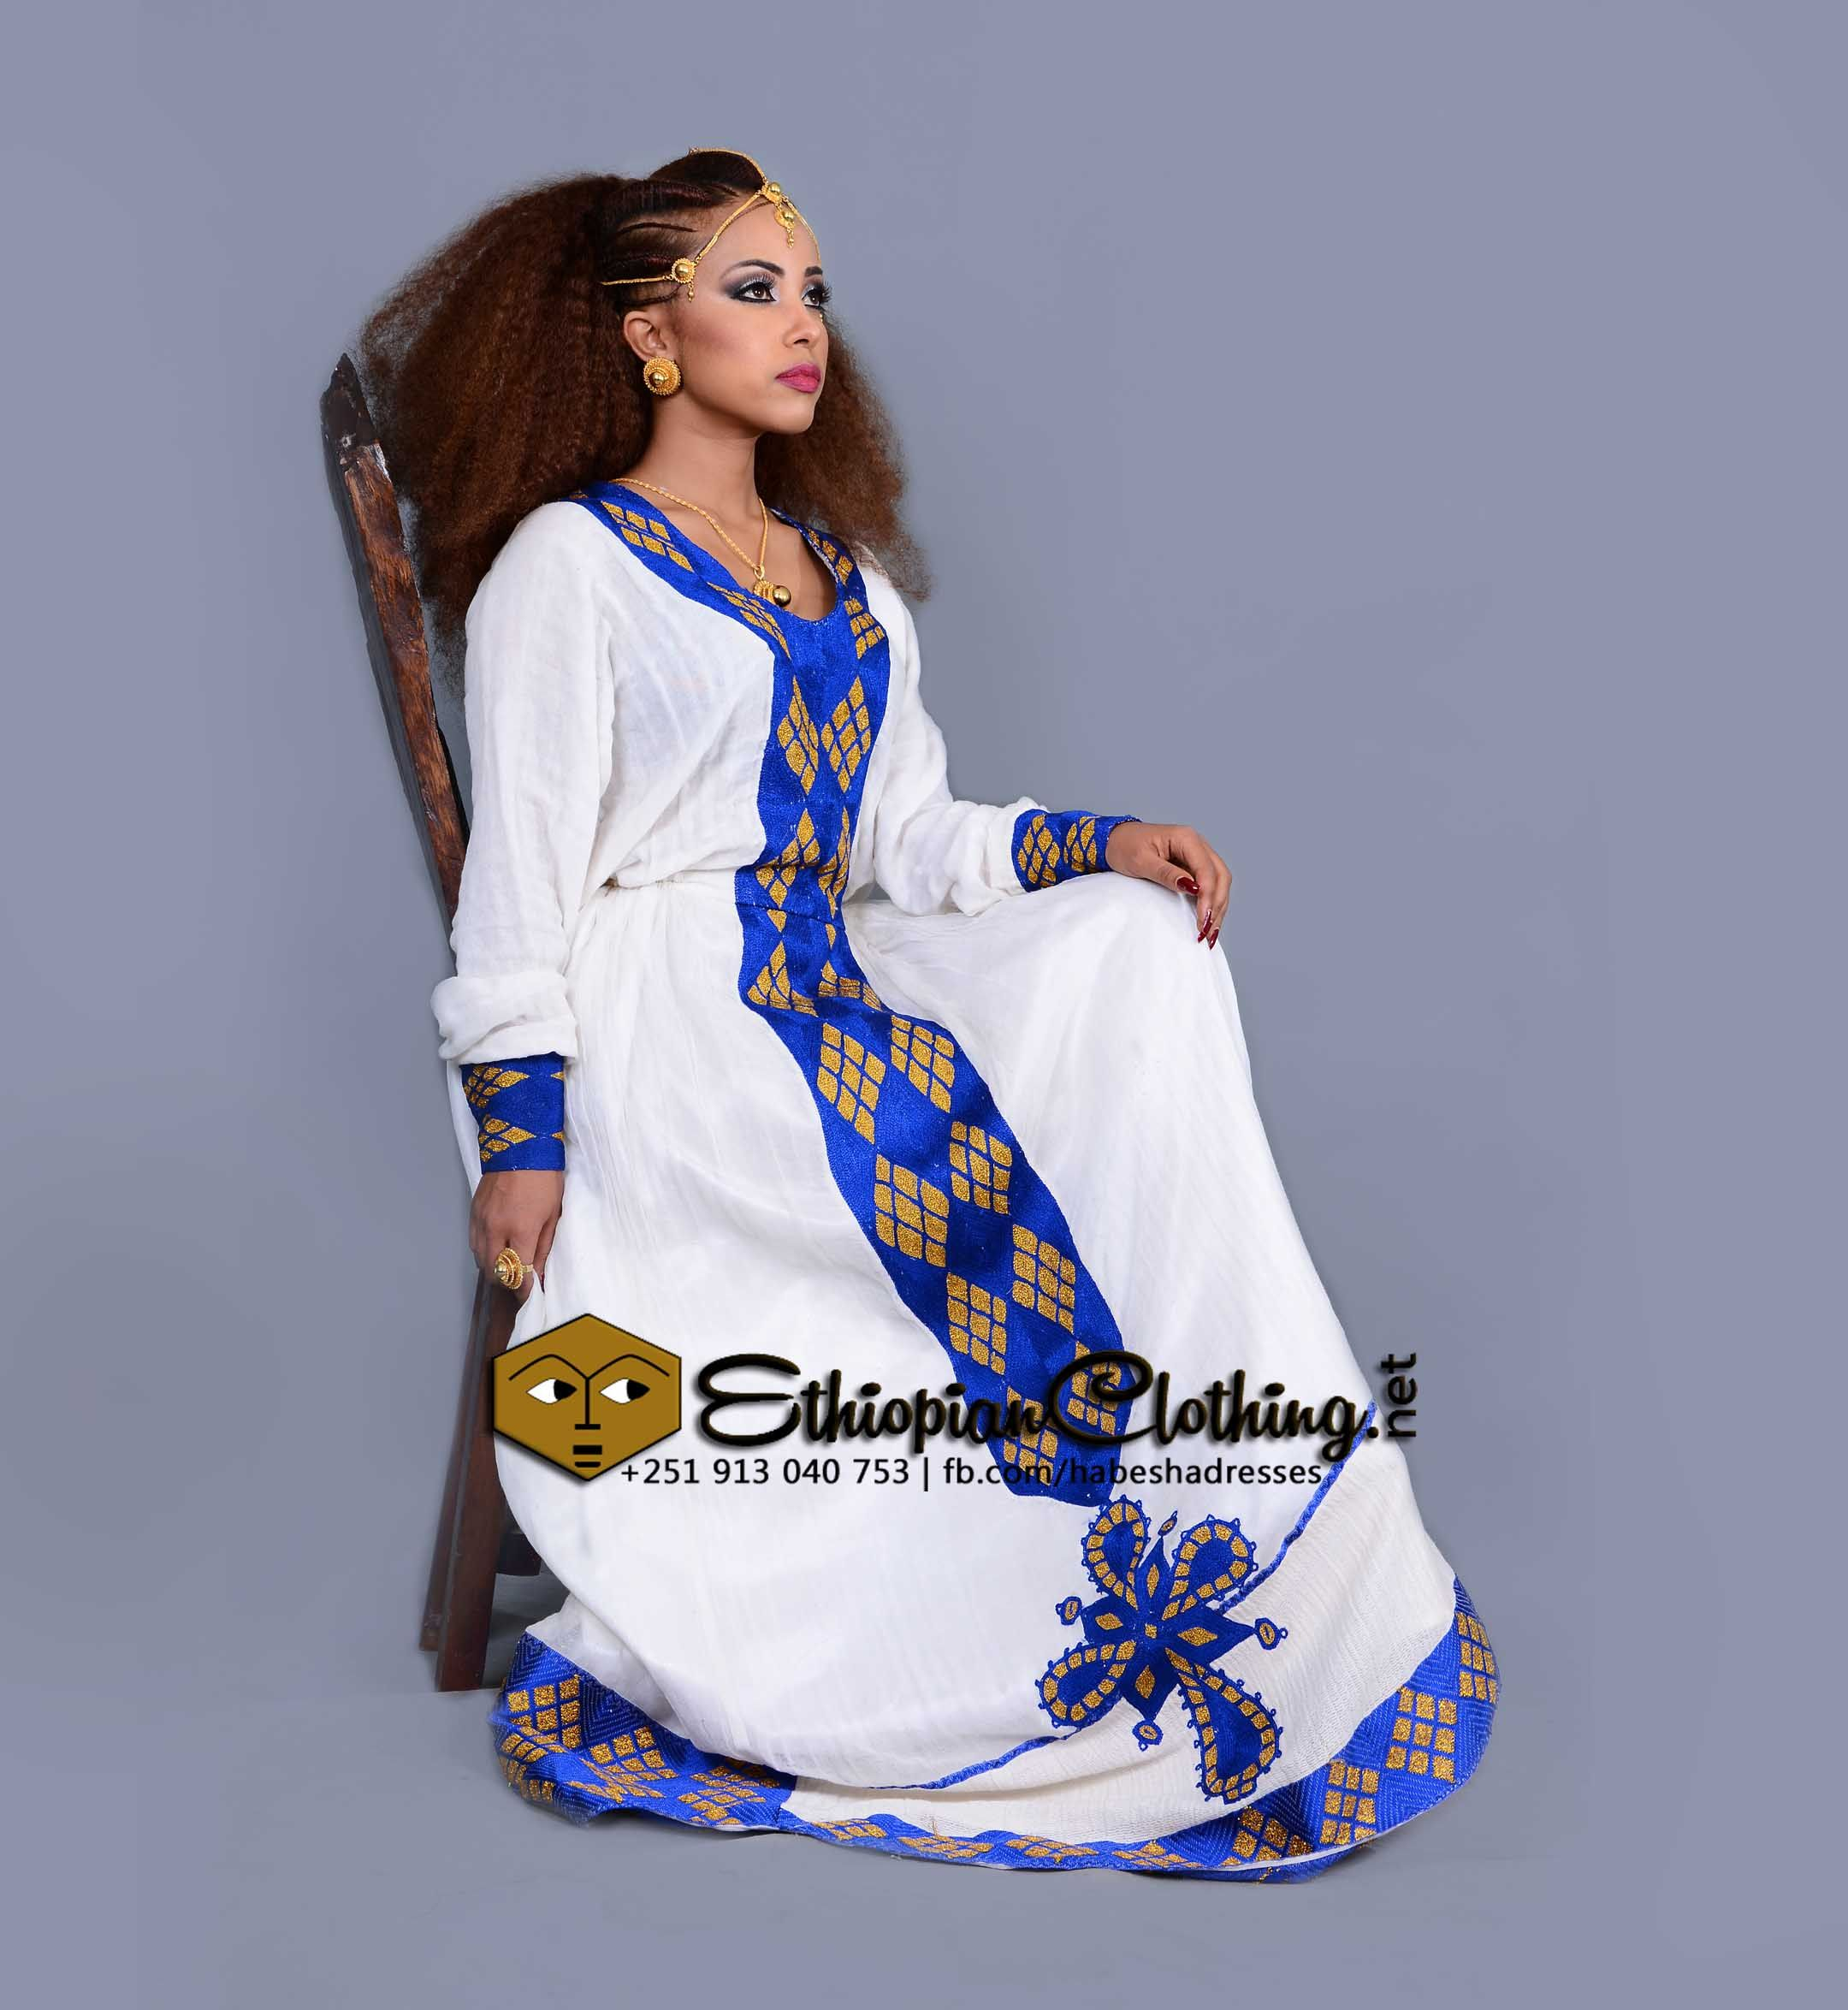 6e63ee12c3d ethiopian clothing mens ethiopian clothing styles traditional ethiopian  clothing ethiopian clothing store near me ethiopian clothing facts modern  ethiopian ...